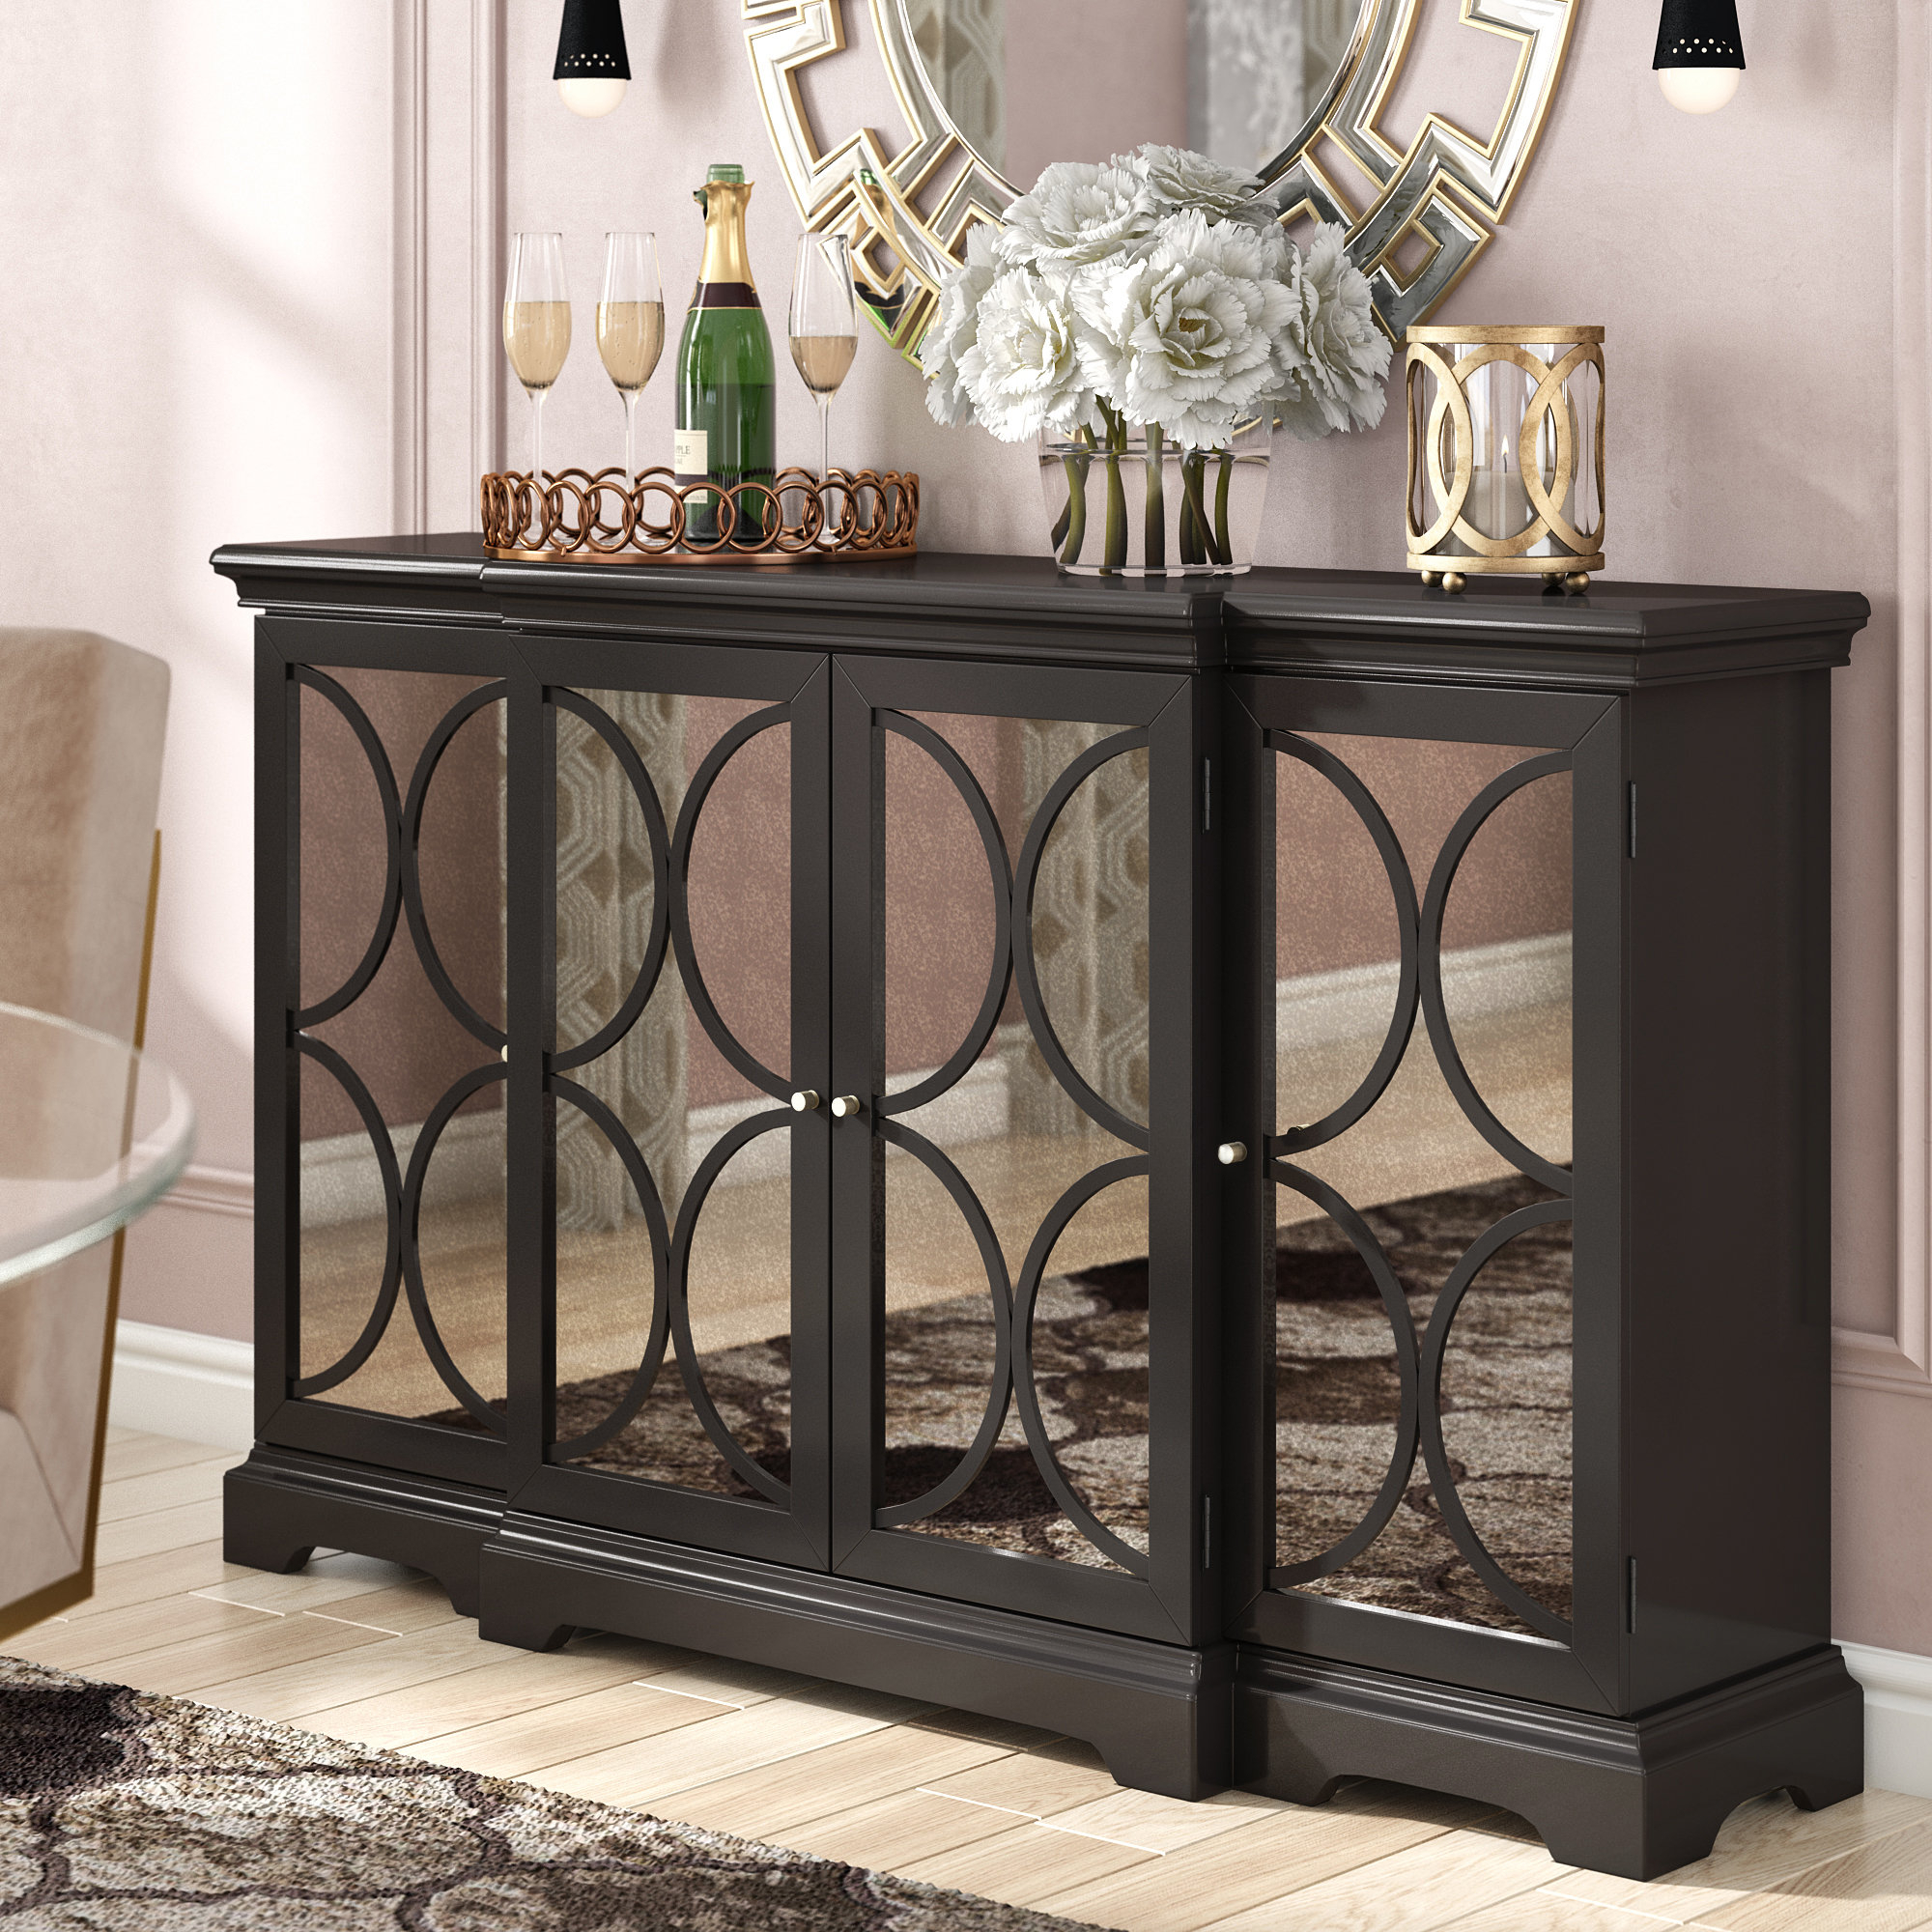 Inspiration about 4 Door Accent Cabinet | Wayfair Within Best And Newest Kara 4 Door Accent Cabinets (#11 of 20)